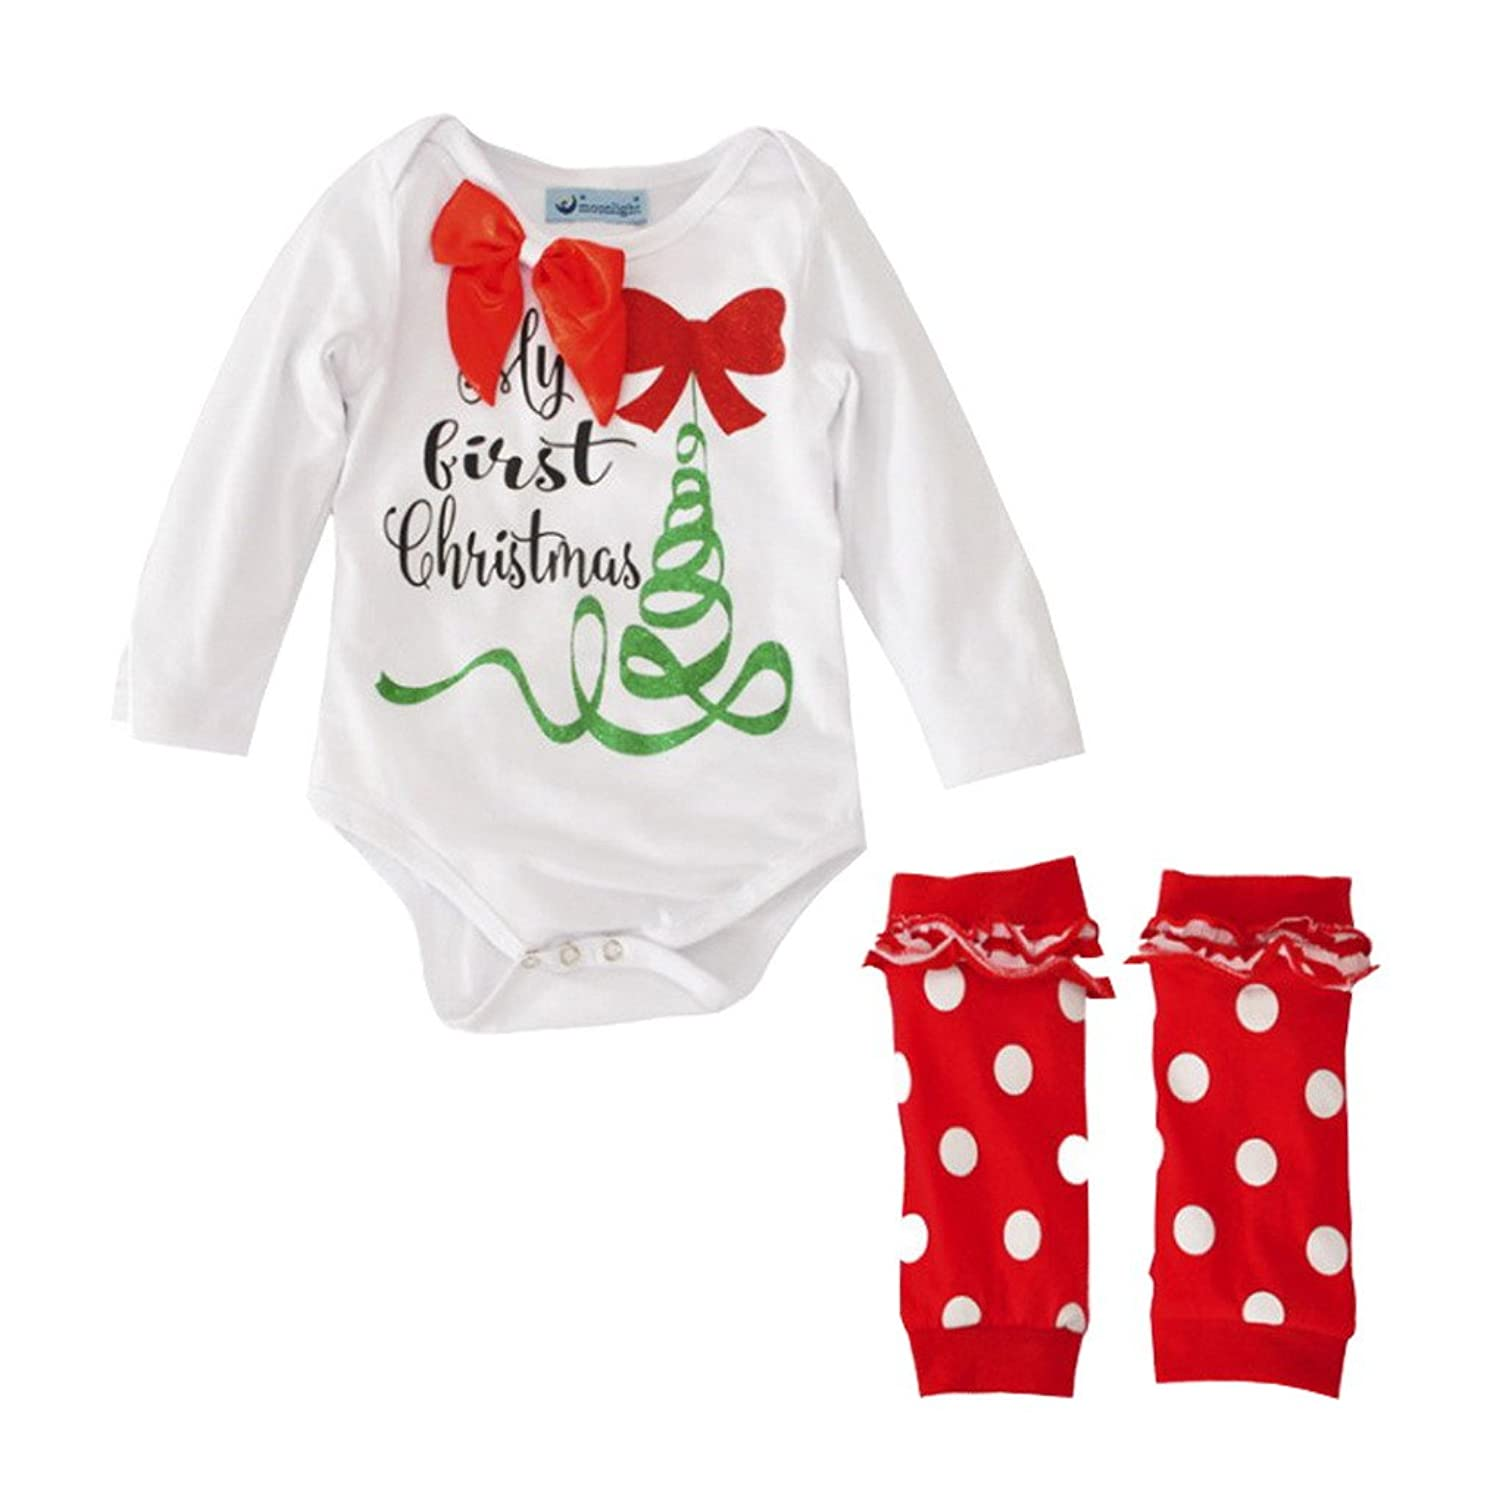 Newborn Baby Christmas Clothing Sets Leg Warmers Outfit Set good ...